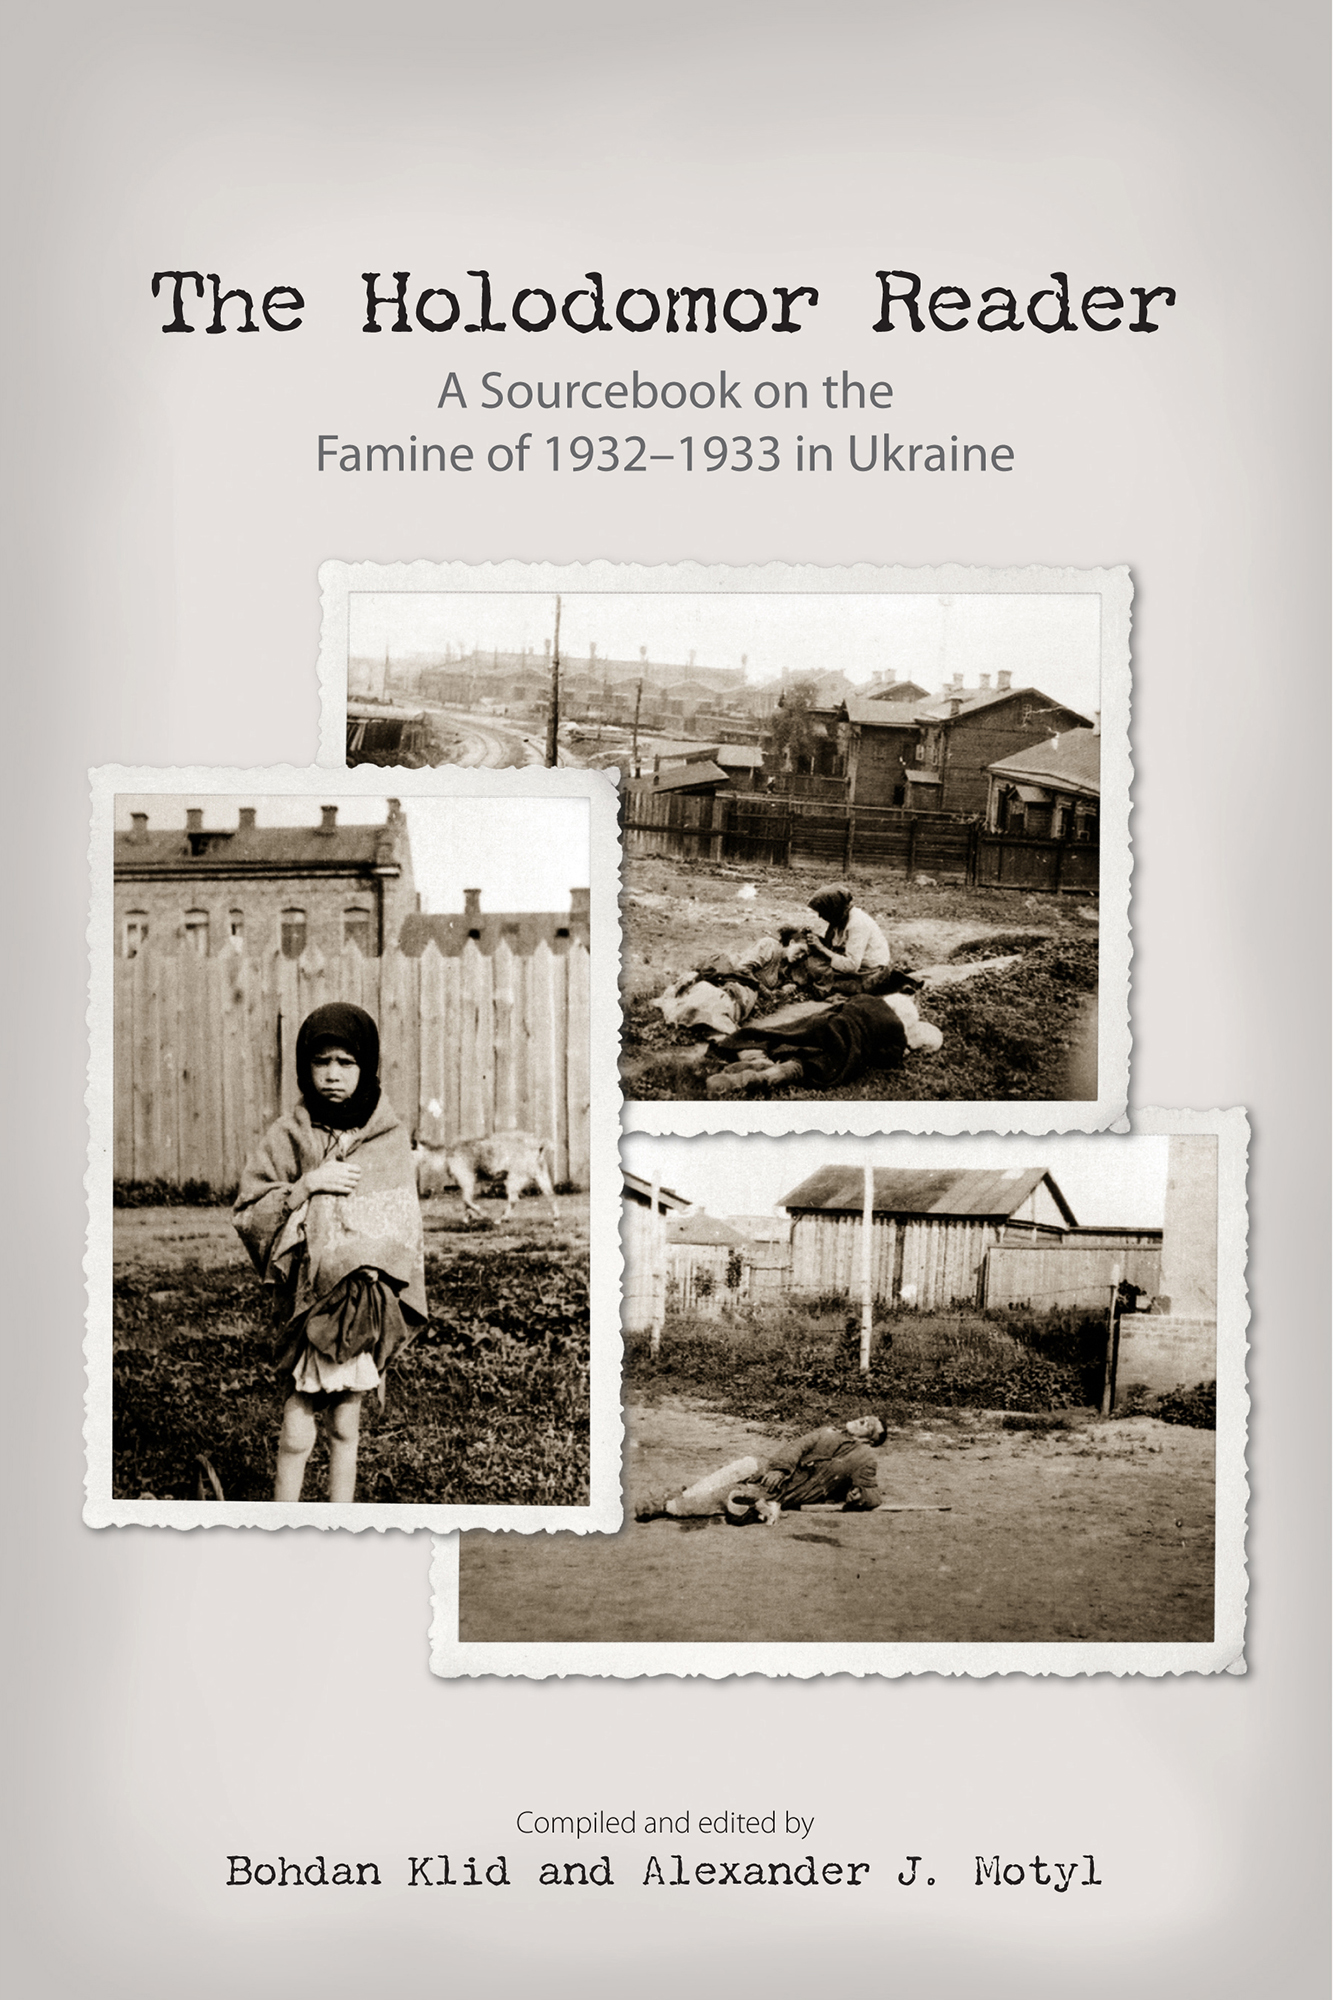 9781894865296 jpg a sourcebook on the famine of 1932 1933 in ukraine